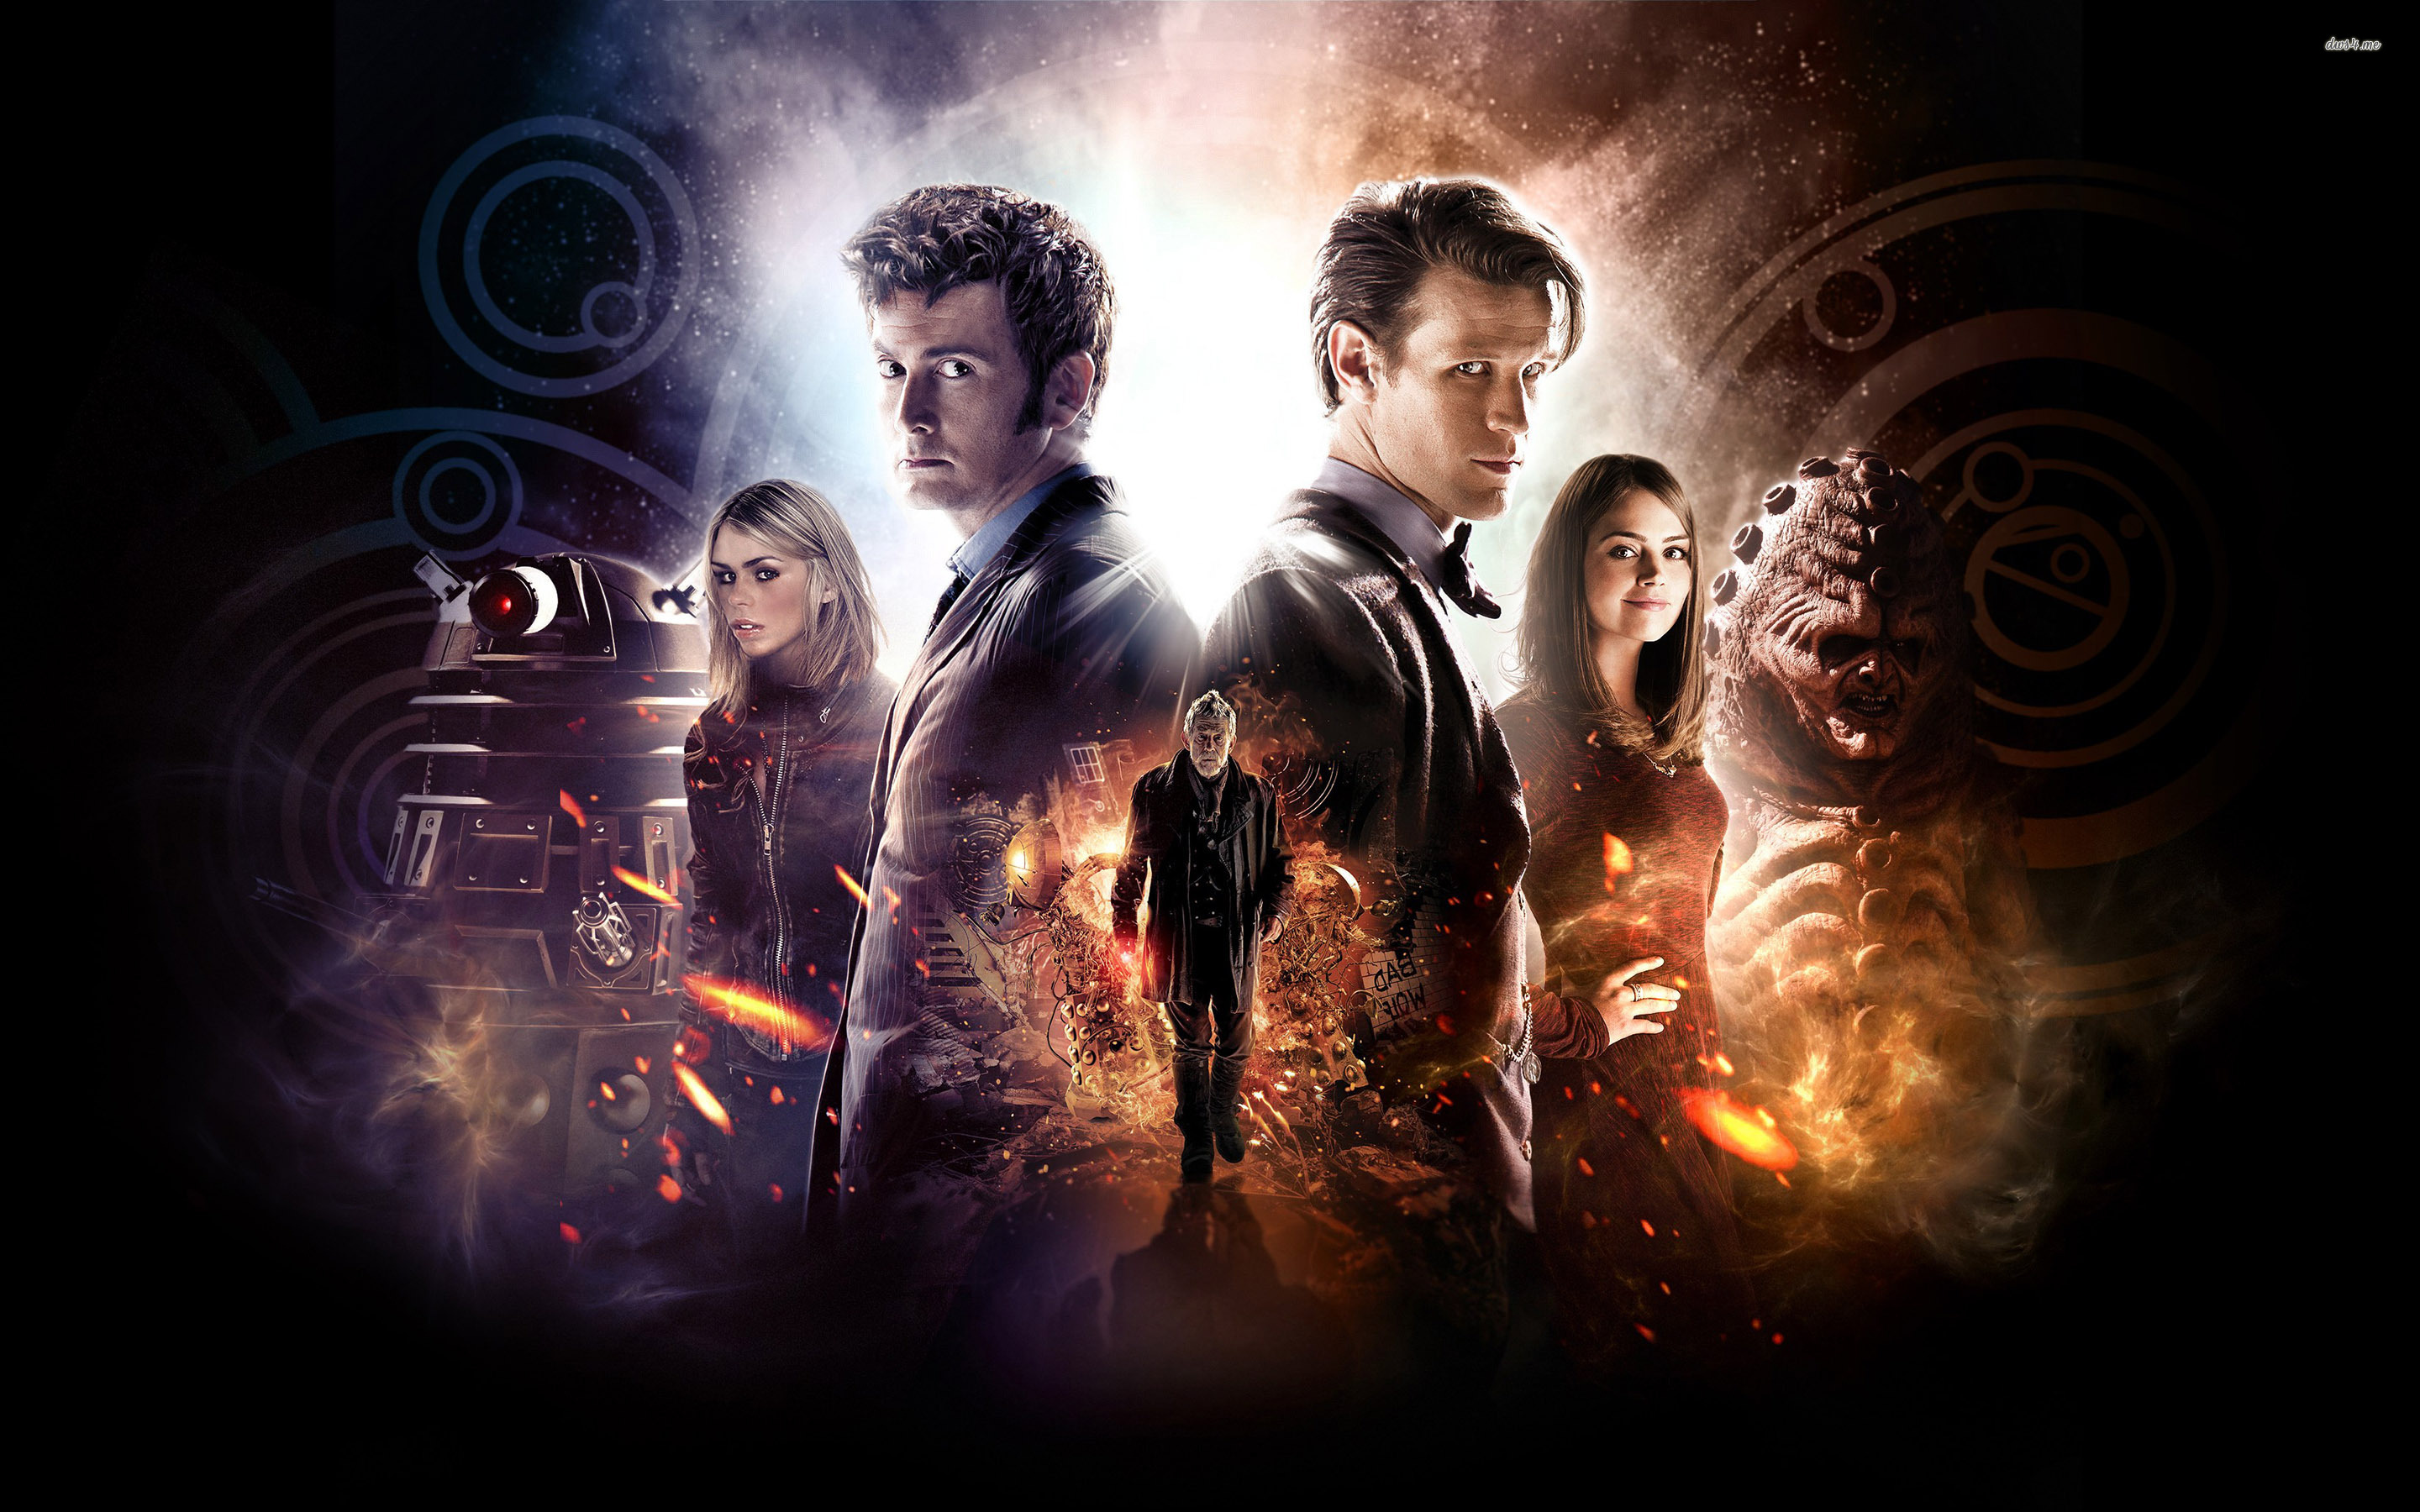 Doctor Who HD Wallpapers for desktop download 2880x1800